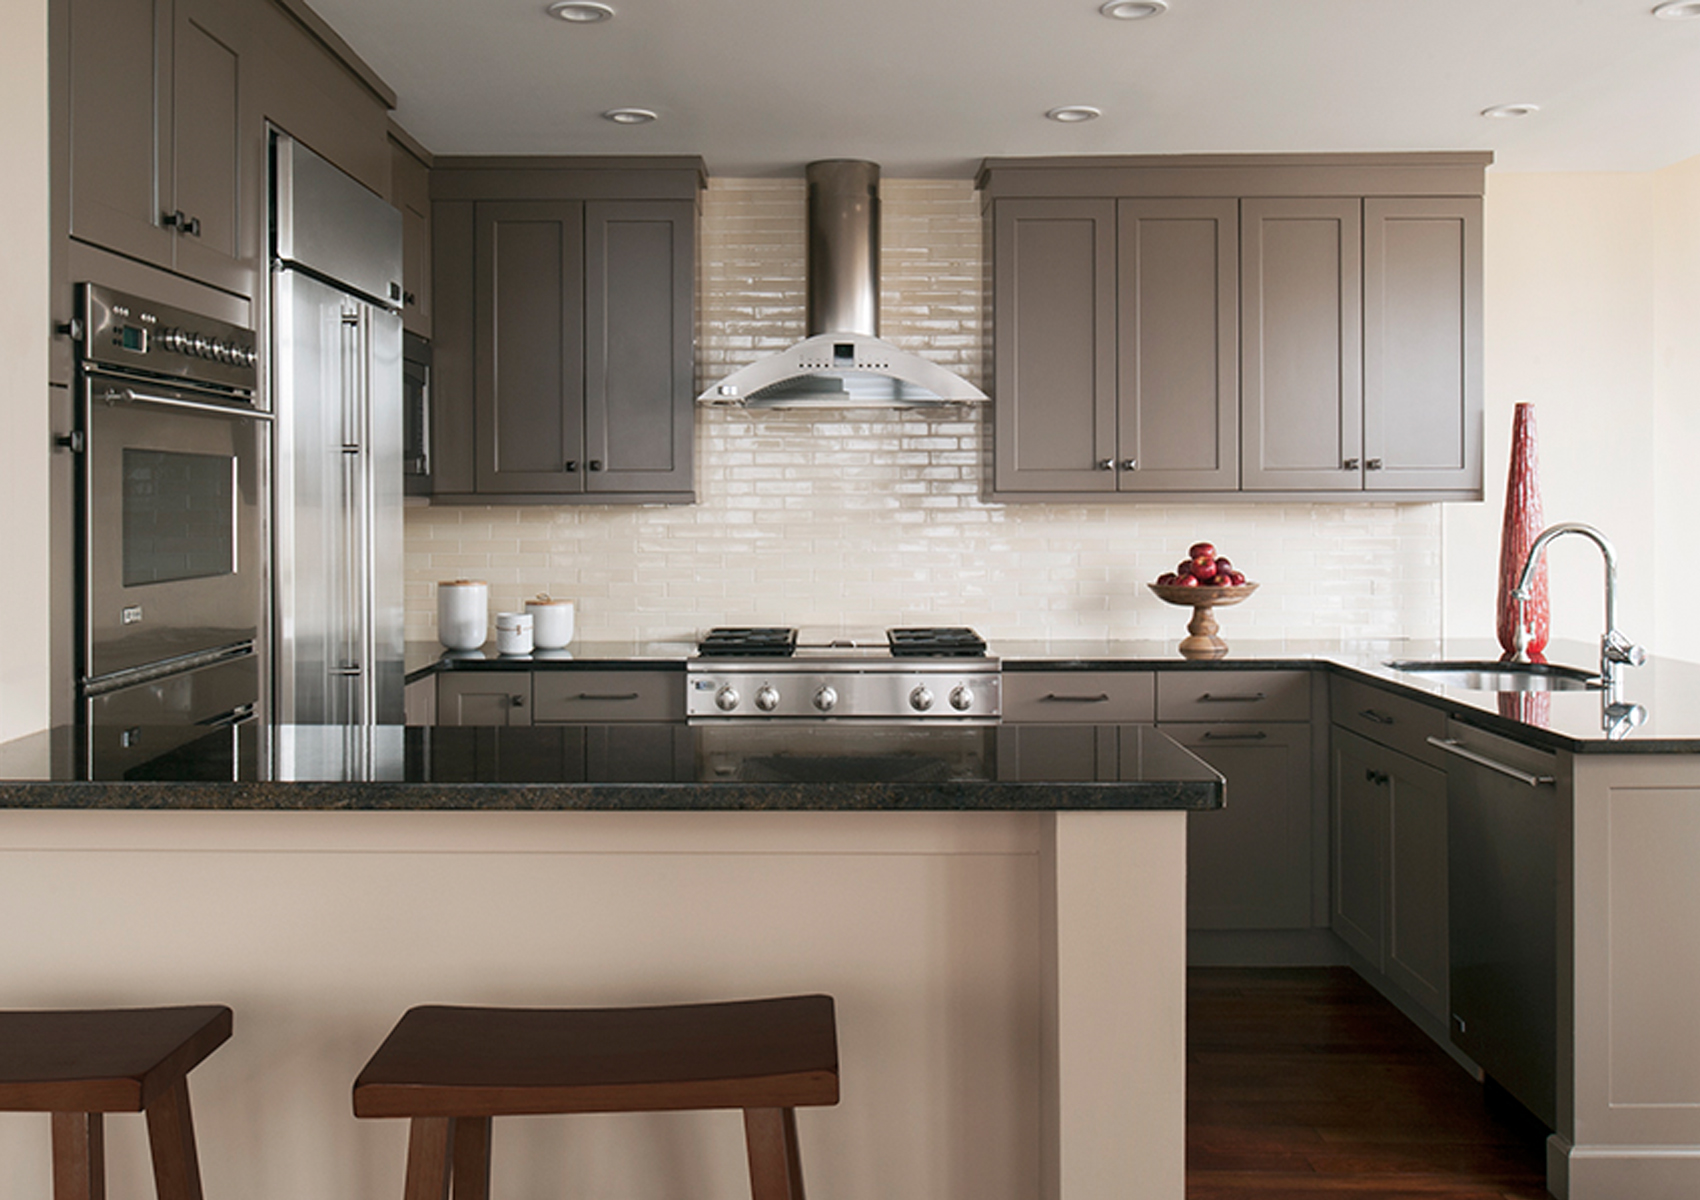 1 Best Interior Designer Philadelphia Kitchen Glenna Stone 1 Glenna Stone Interior Design